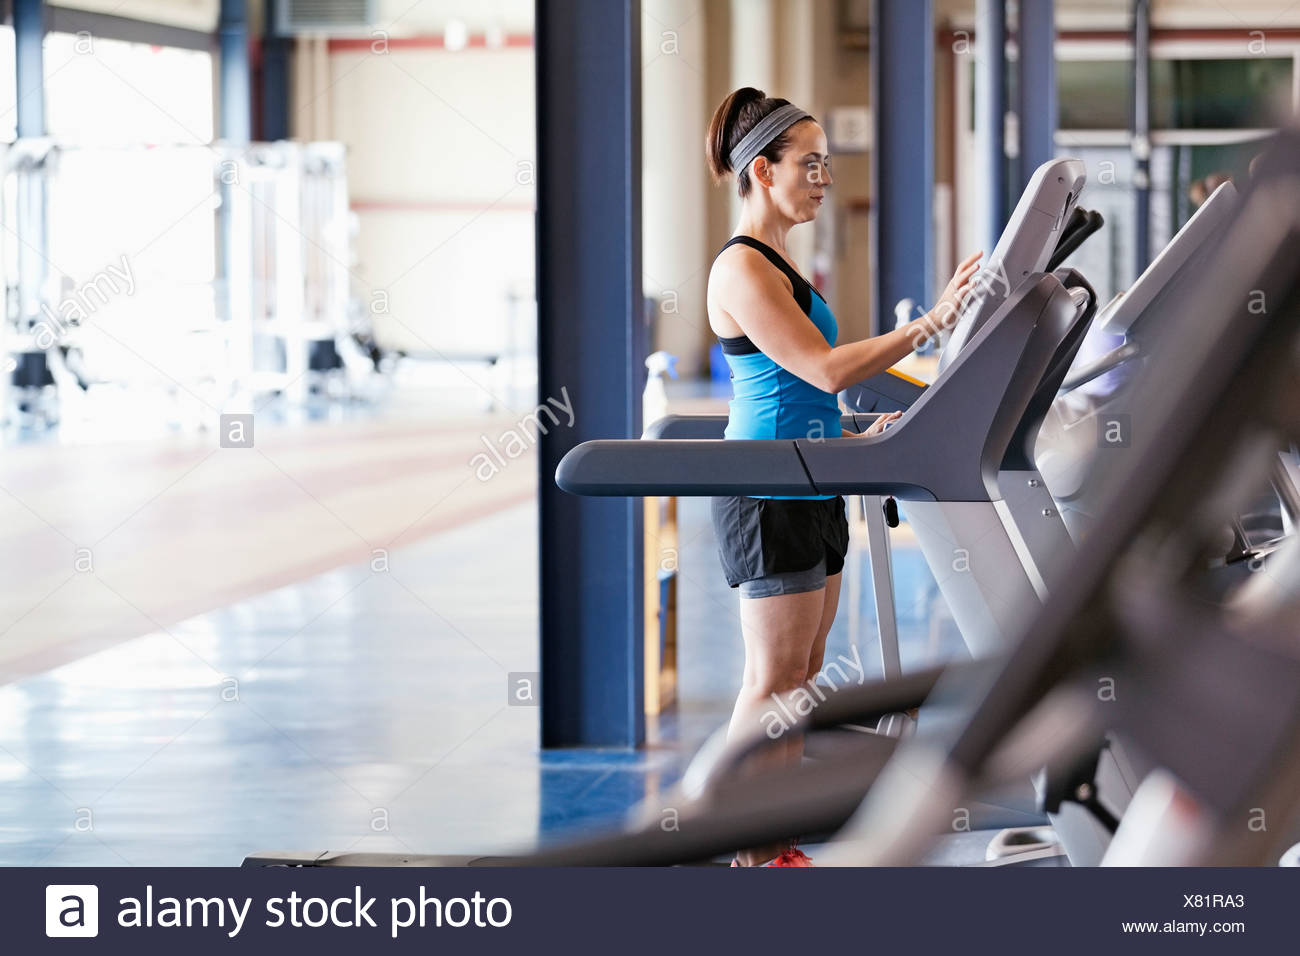 Woman exercising on treadmill in fitness center Stock Photo